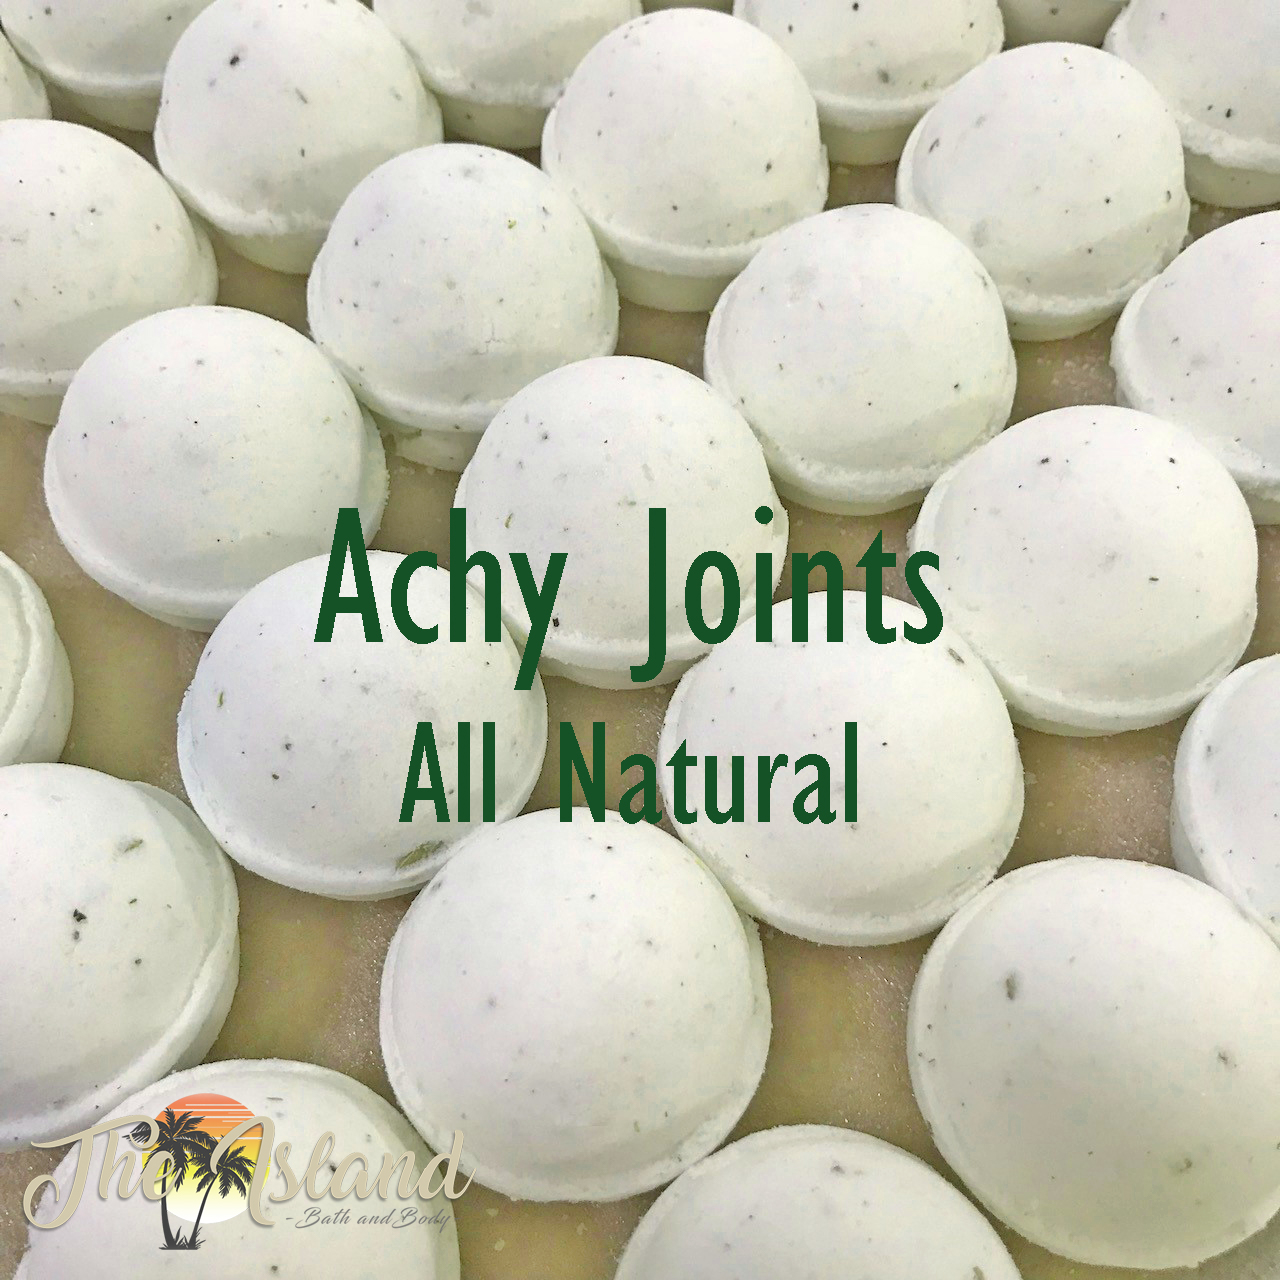 Achy Joints 5.5 oz Natural Bath Bombs